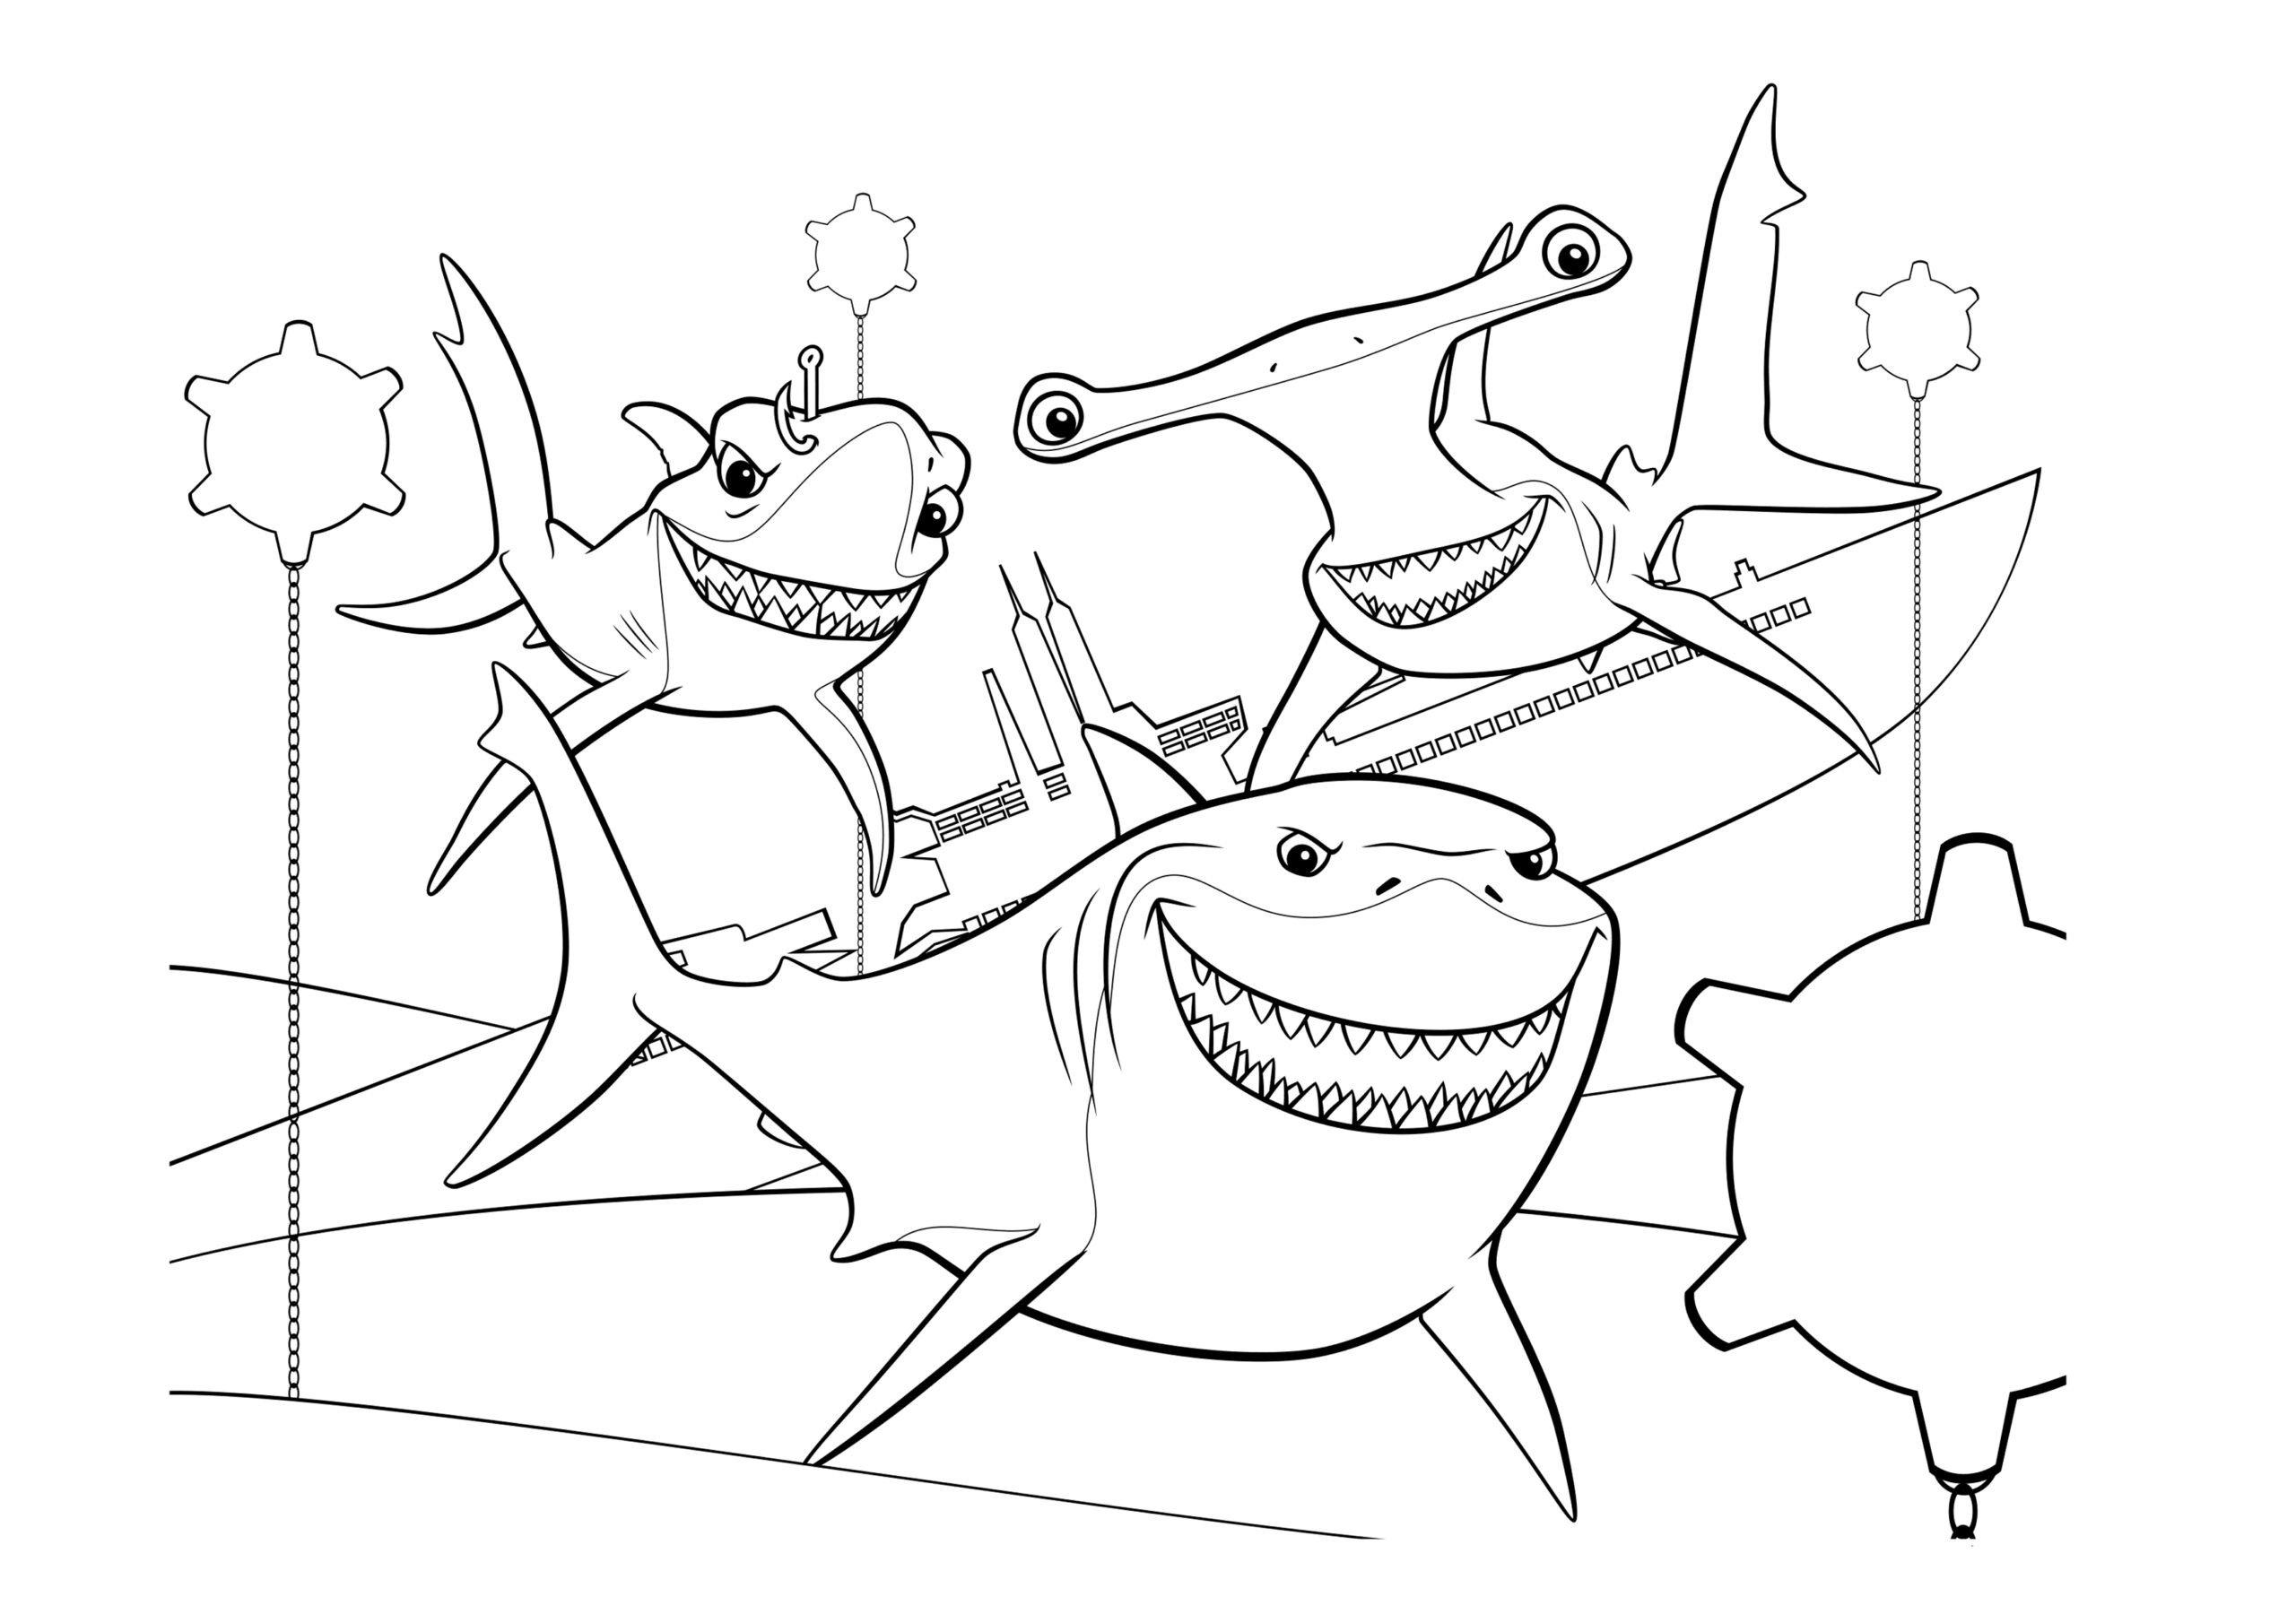 viewourwork nemo shark coloring finding printables sharks anchor bruce and chum hooked on math carpentry worksheets multiplication division year grade workbook touch activities scaled